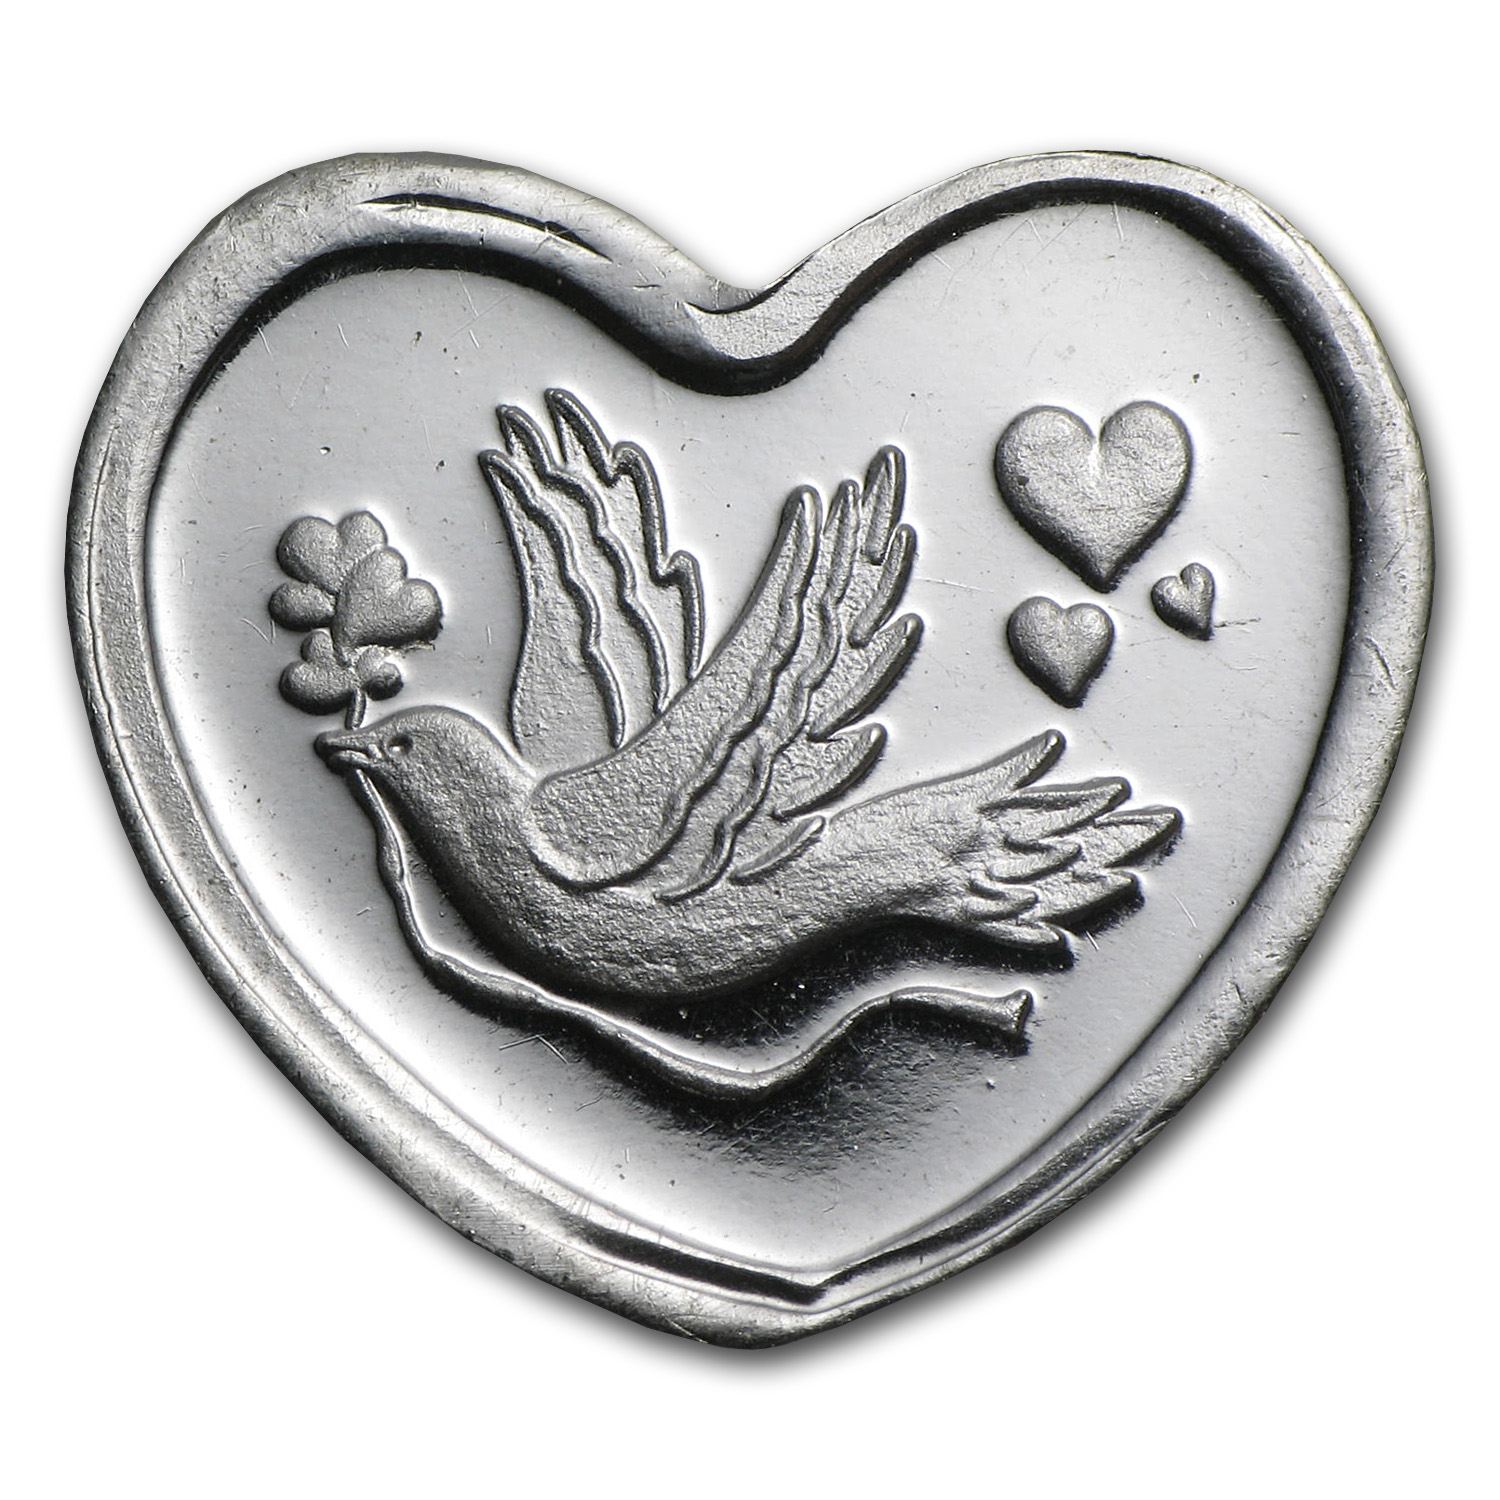 1/10 oz Silver Heart - Dove and Heart